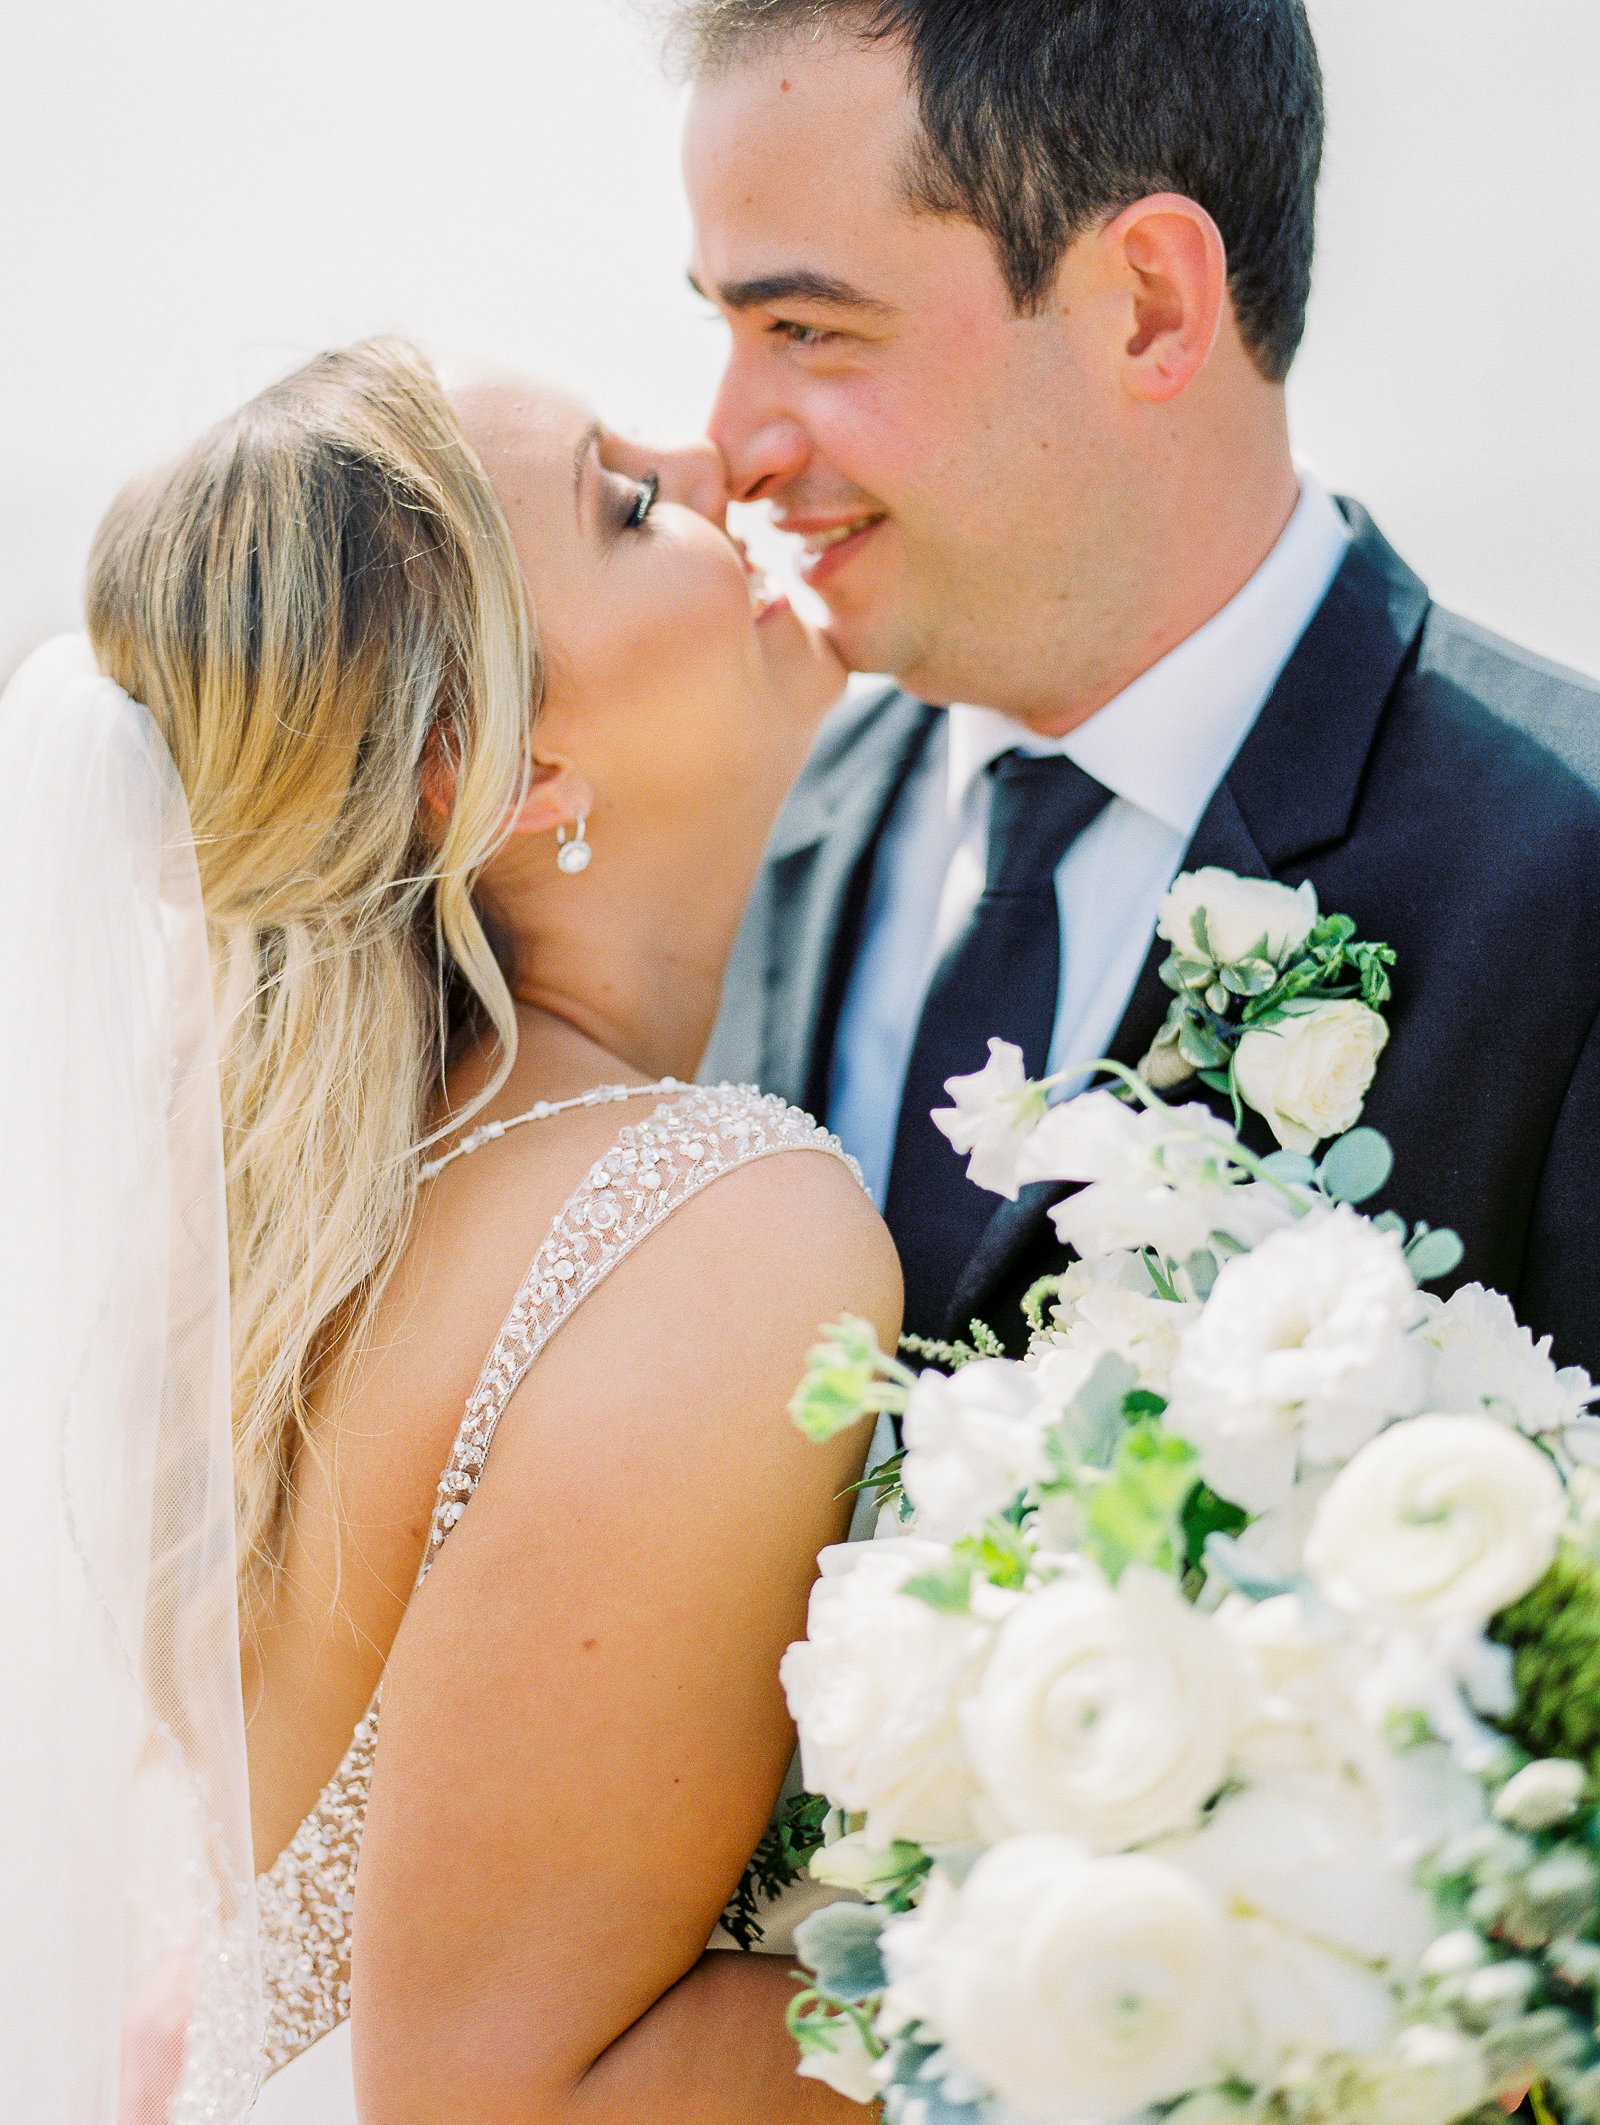 Megan_Harris_Photography_Fine_Art_Silver_Swan_Bayside_Maryland_Wedding_MeganHarris_Blog (107 of 110)